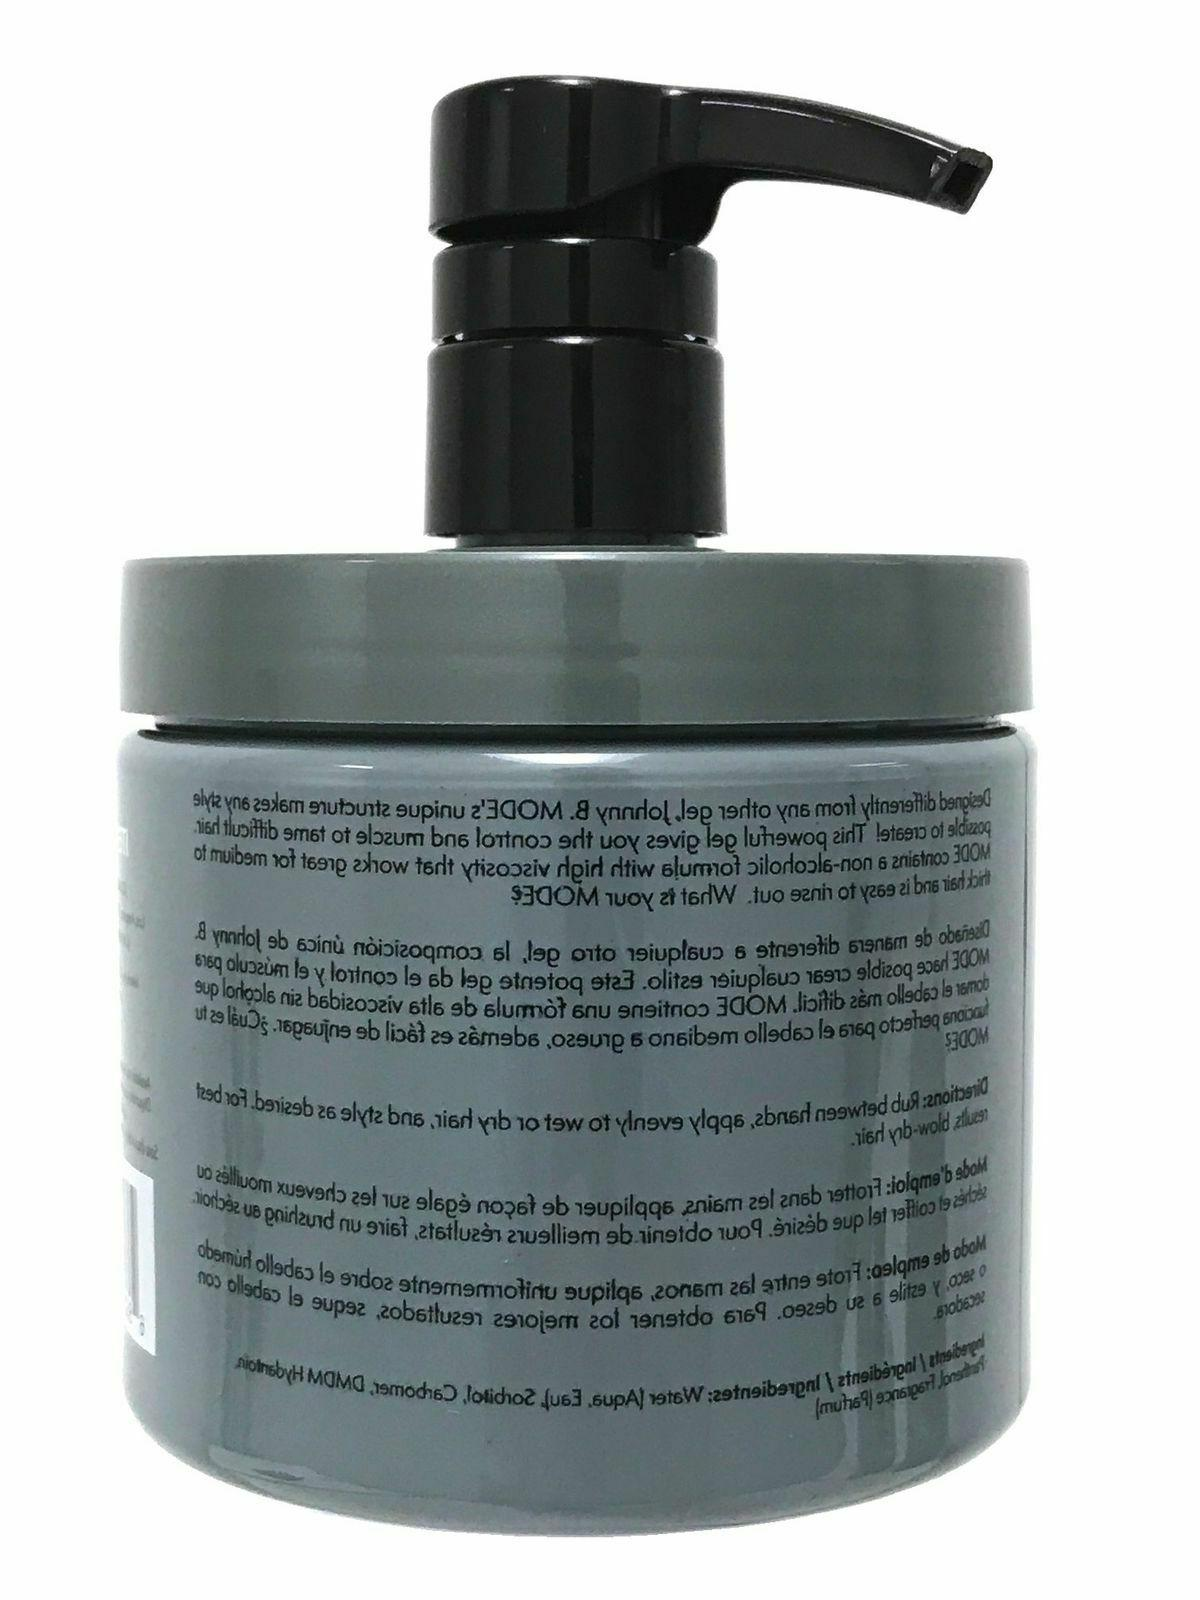 NEW JOHNNY B HAIR STYLING GEL WITH PUMP OZ SHIPPING